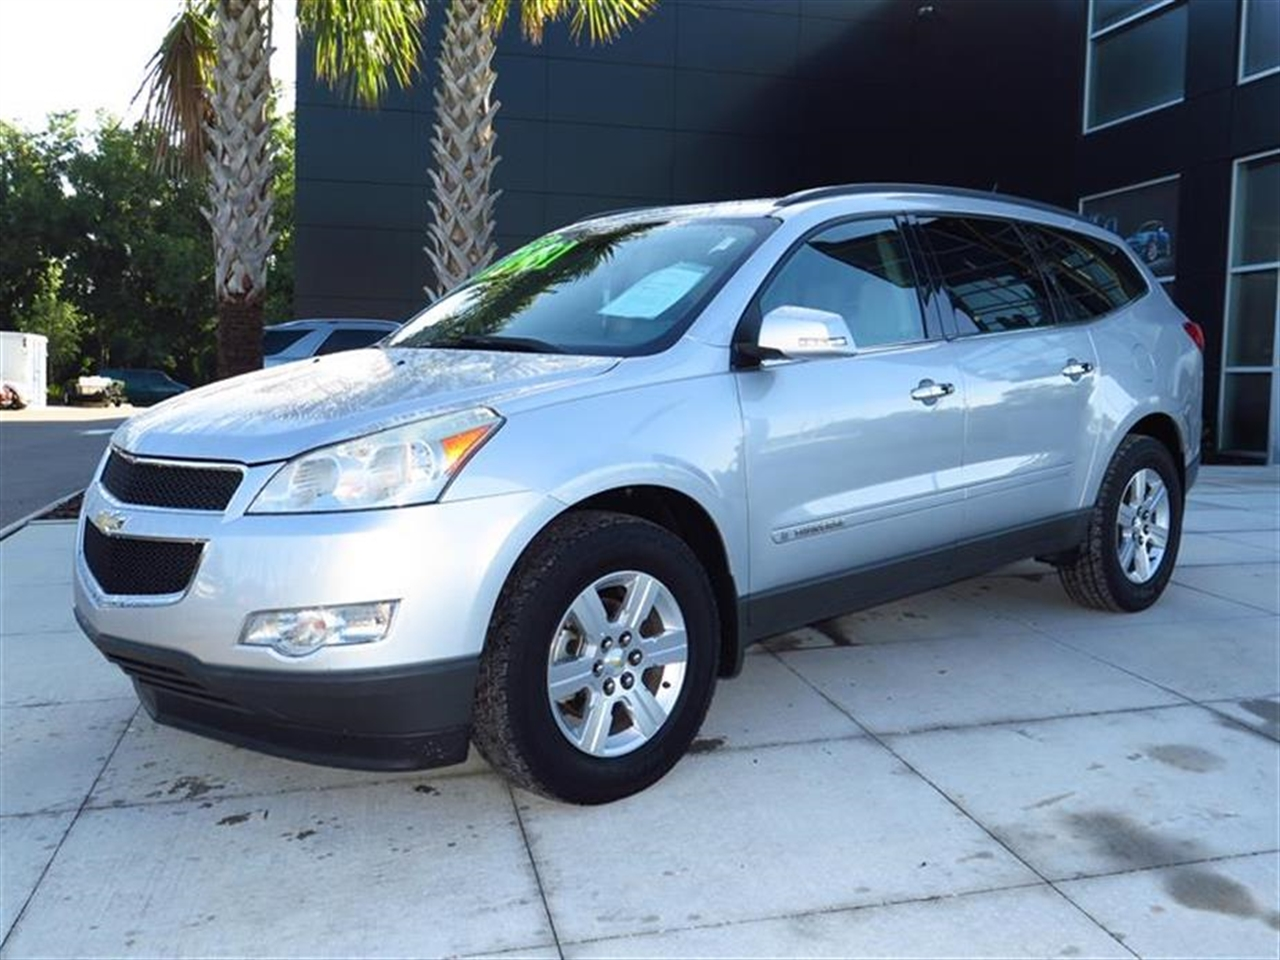 2009 CHEVROLET TRAVERSE FWD 4dr LT w2LT 69945 miles Air conditioning rear manual tri-zone autom